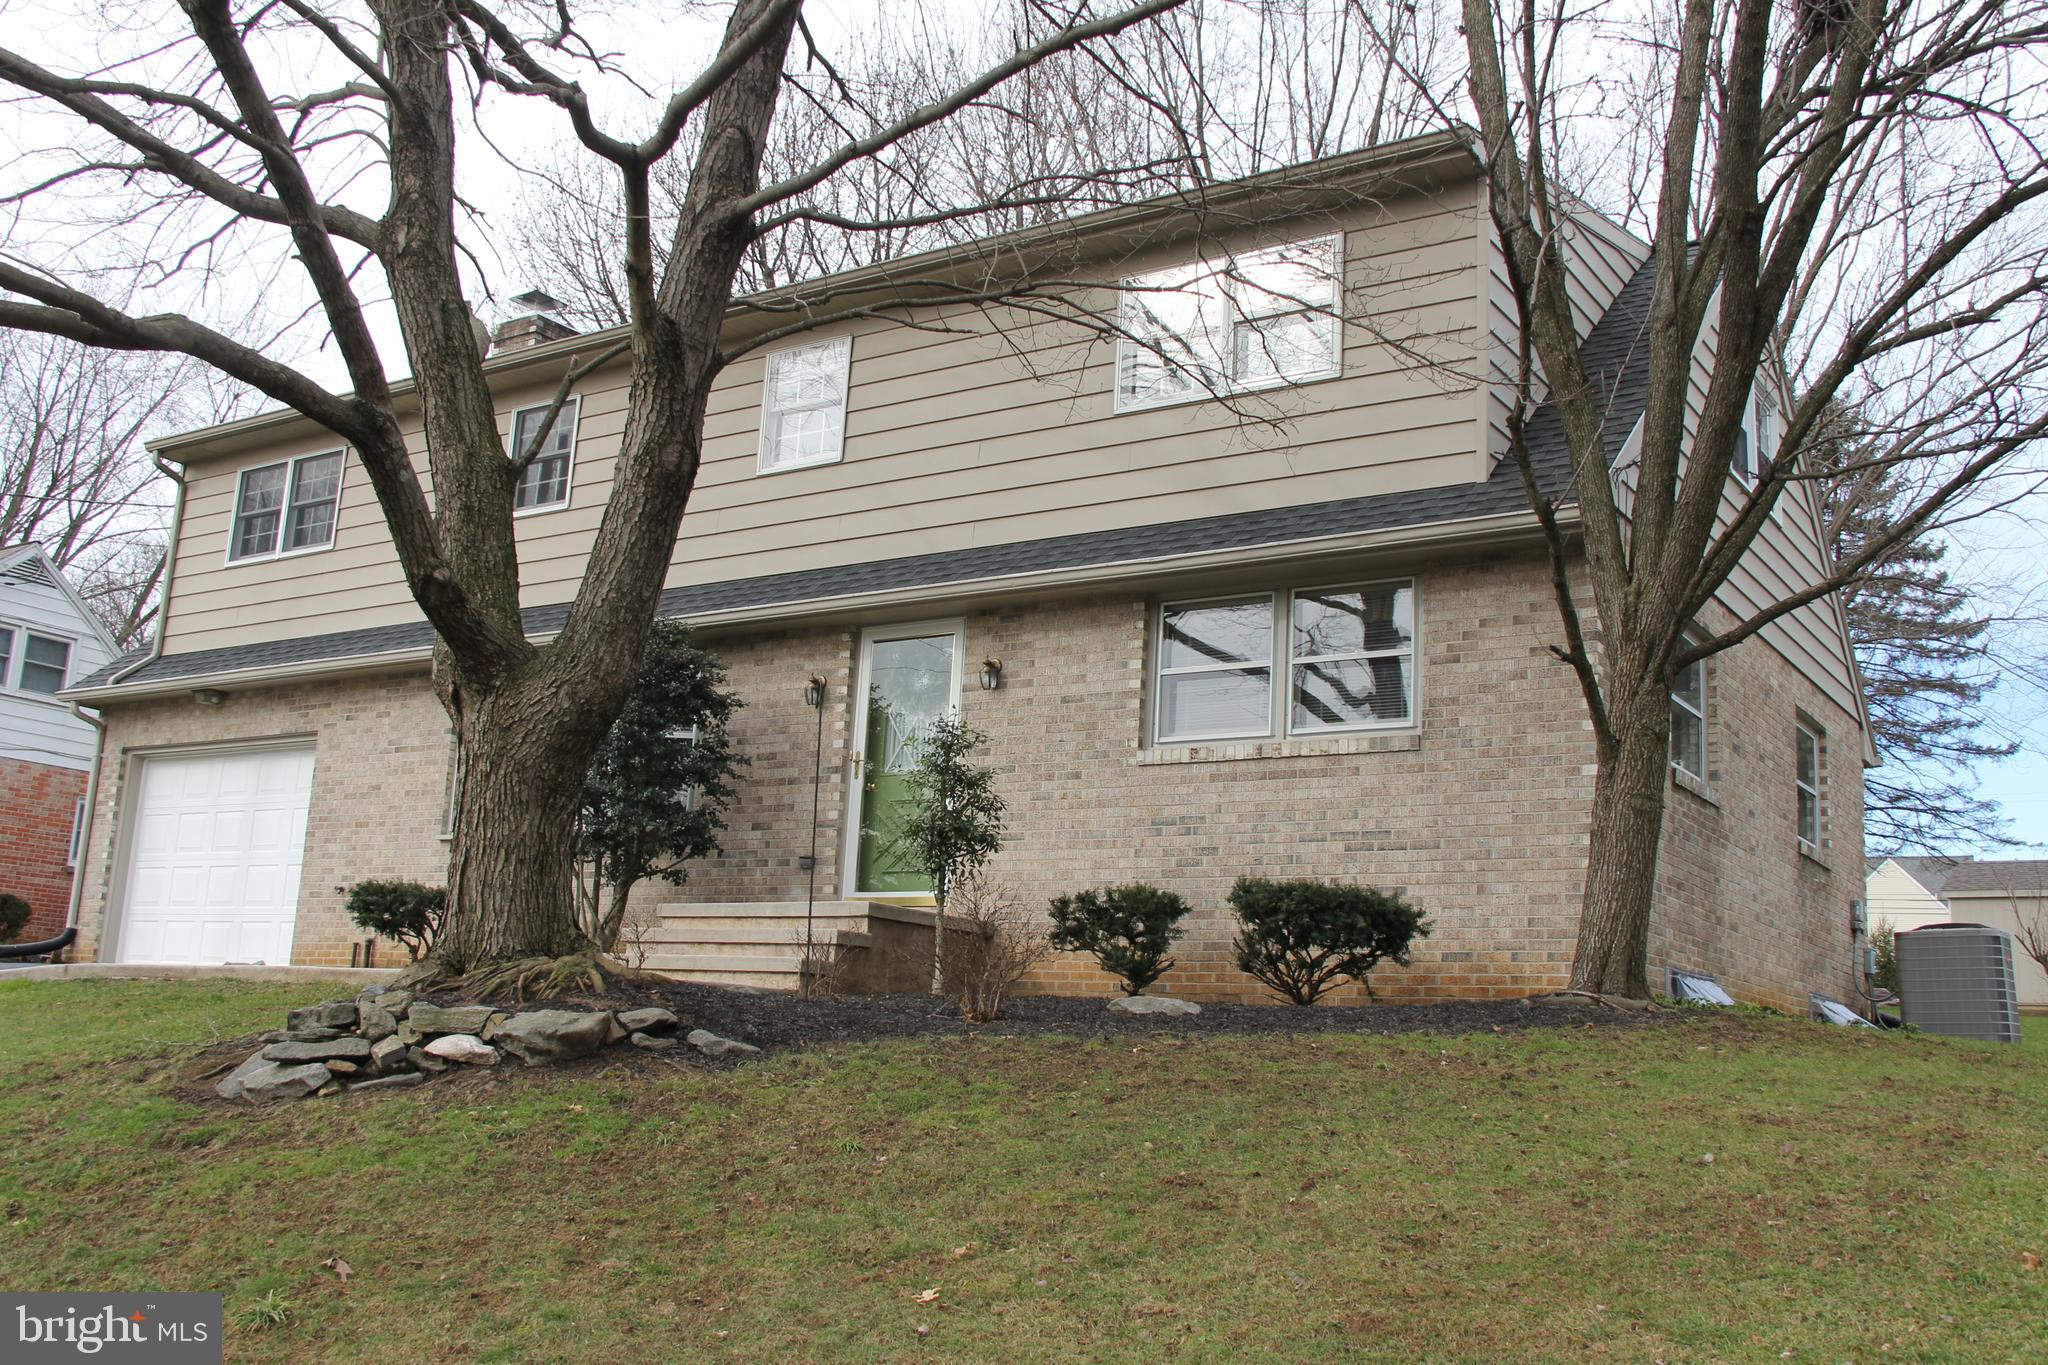 2527 SPECKLED DR, EAST PETERSBURG, PA 17520